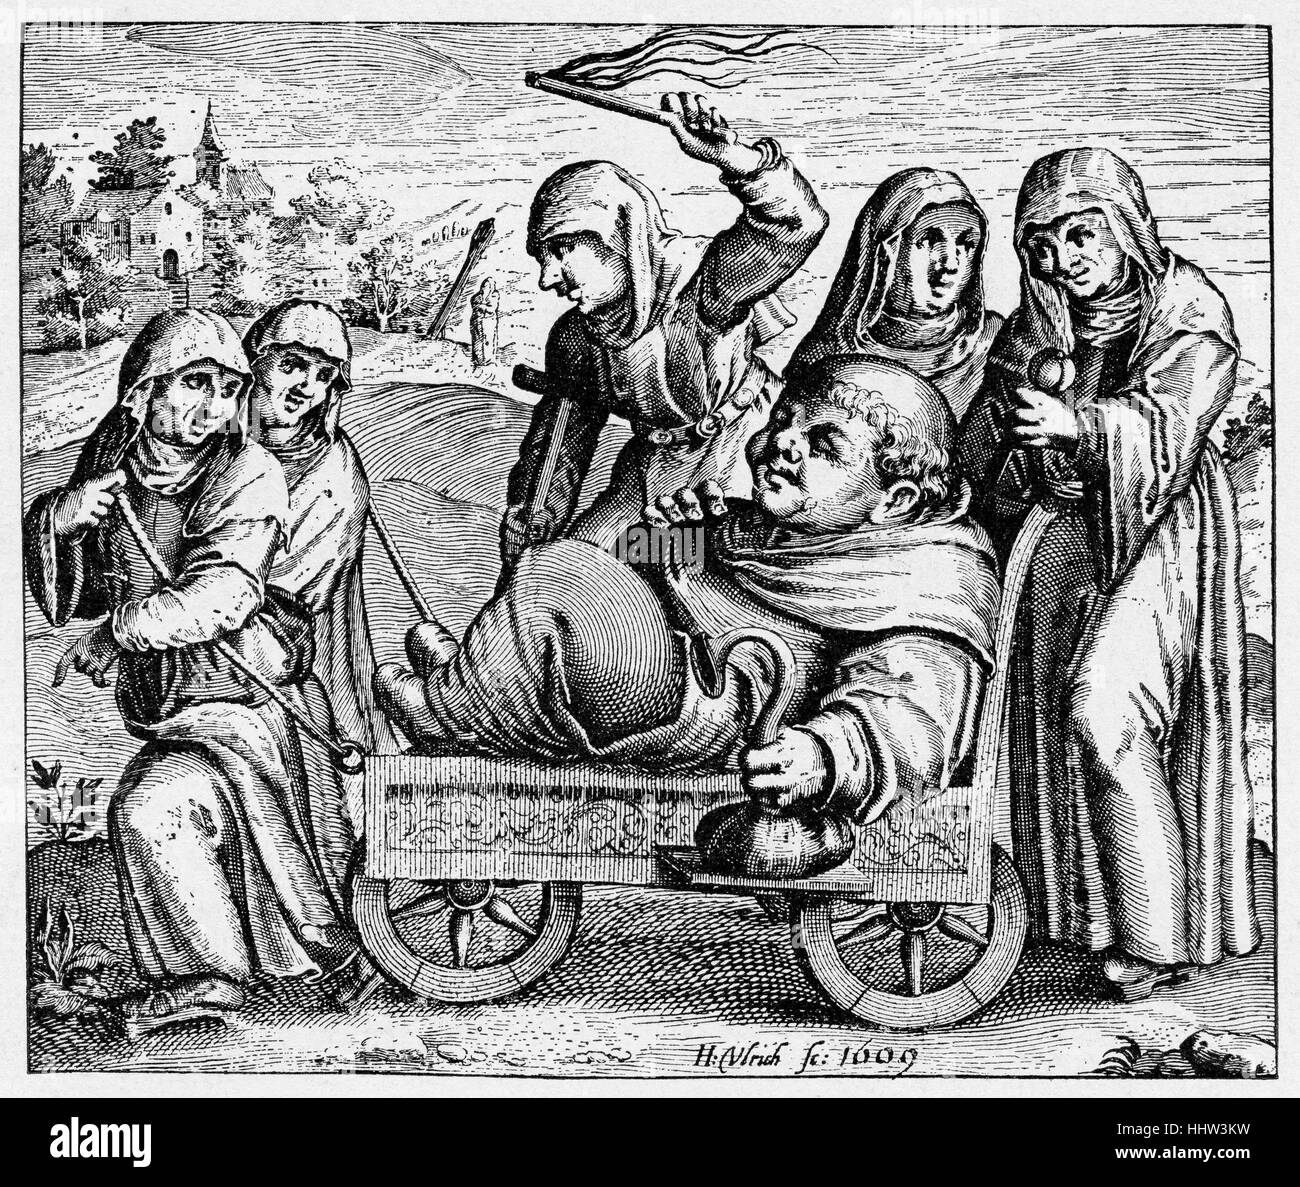 Reformation era caricature, 1609, allegorical depiction of monk's insobriety - Stock Image